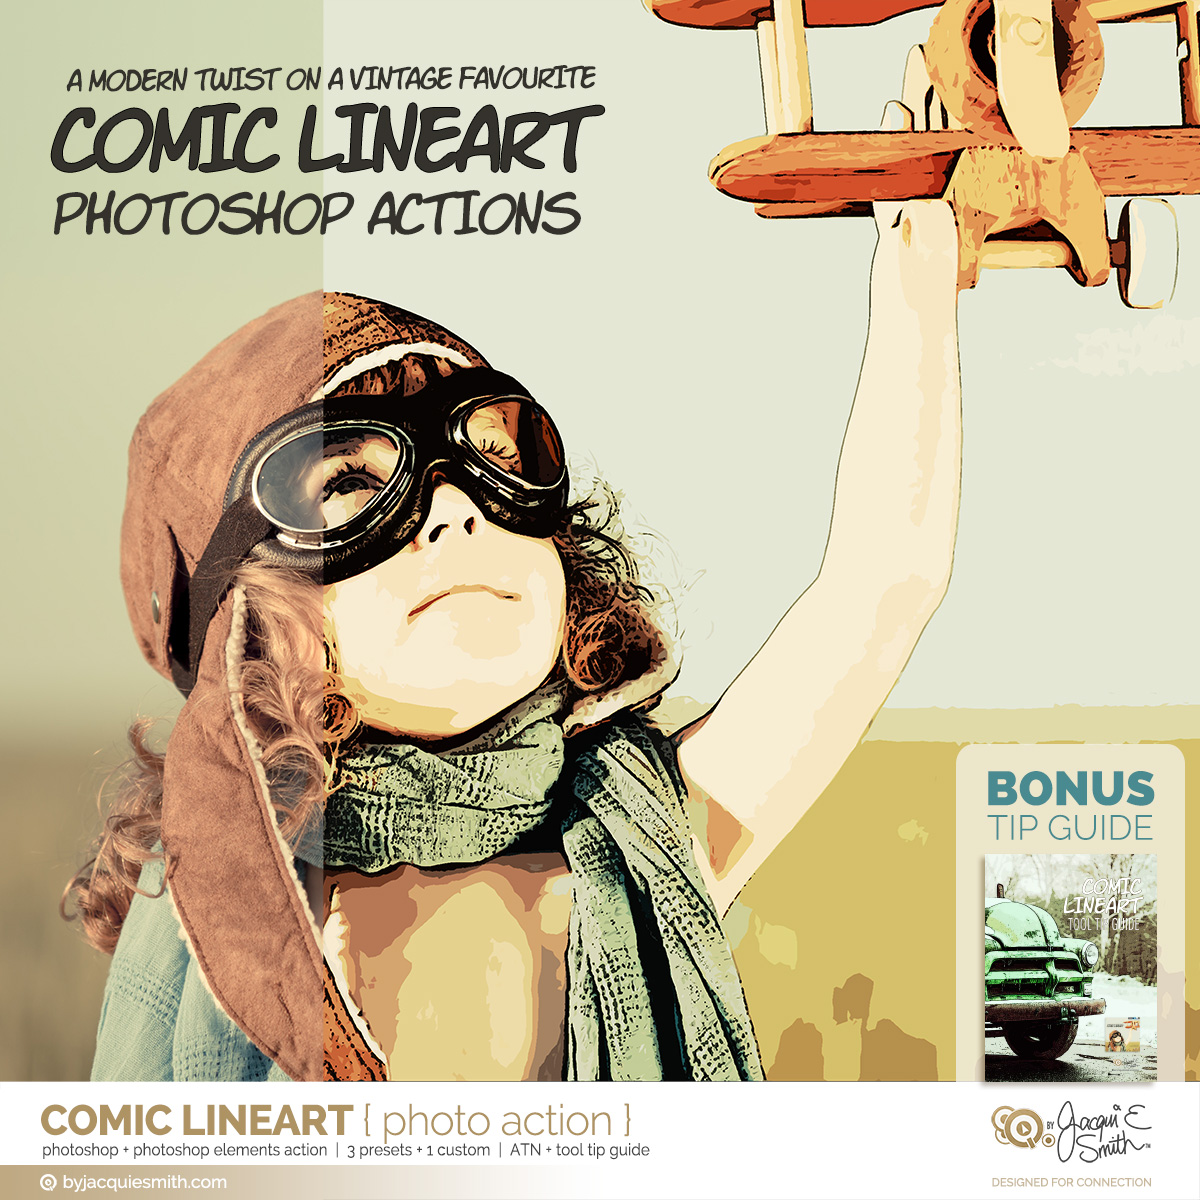 Comic LineArt photo action at byjacquiesmith.com